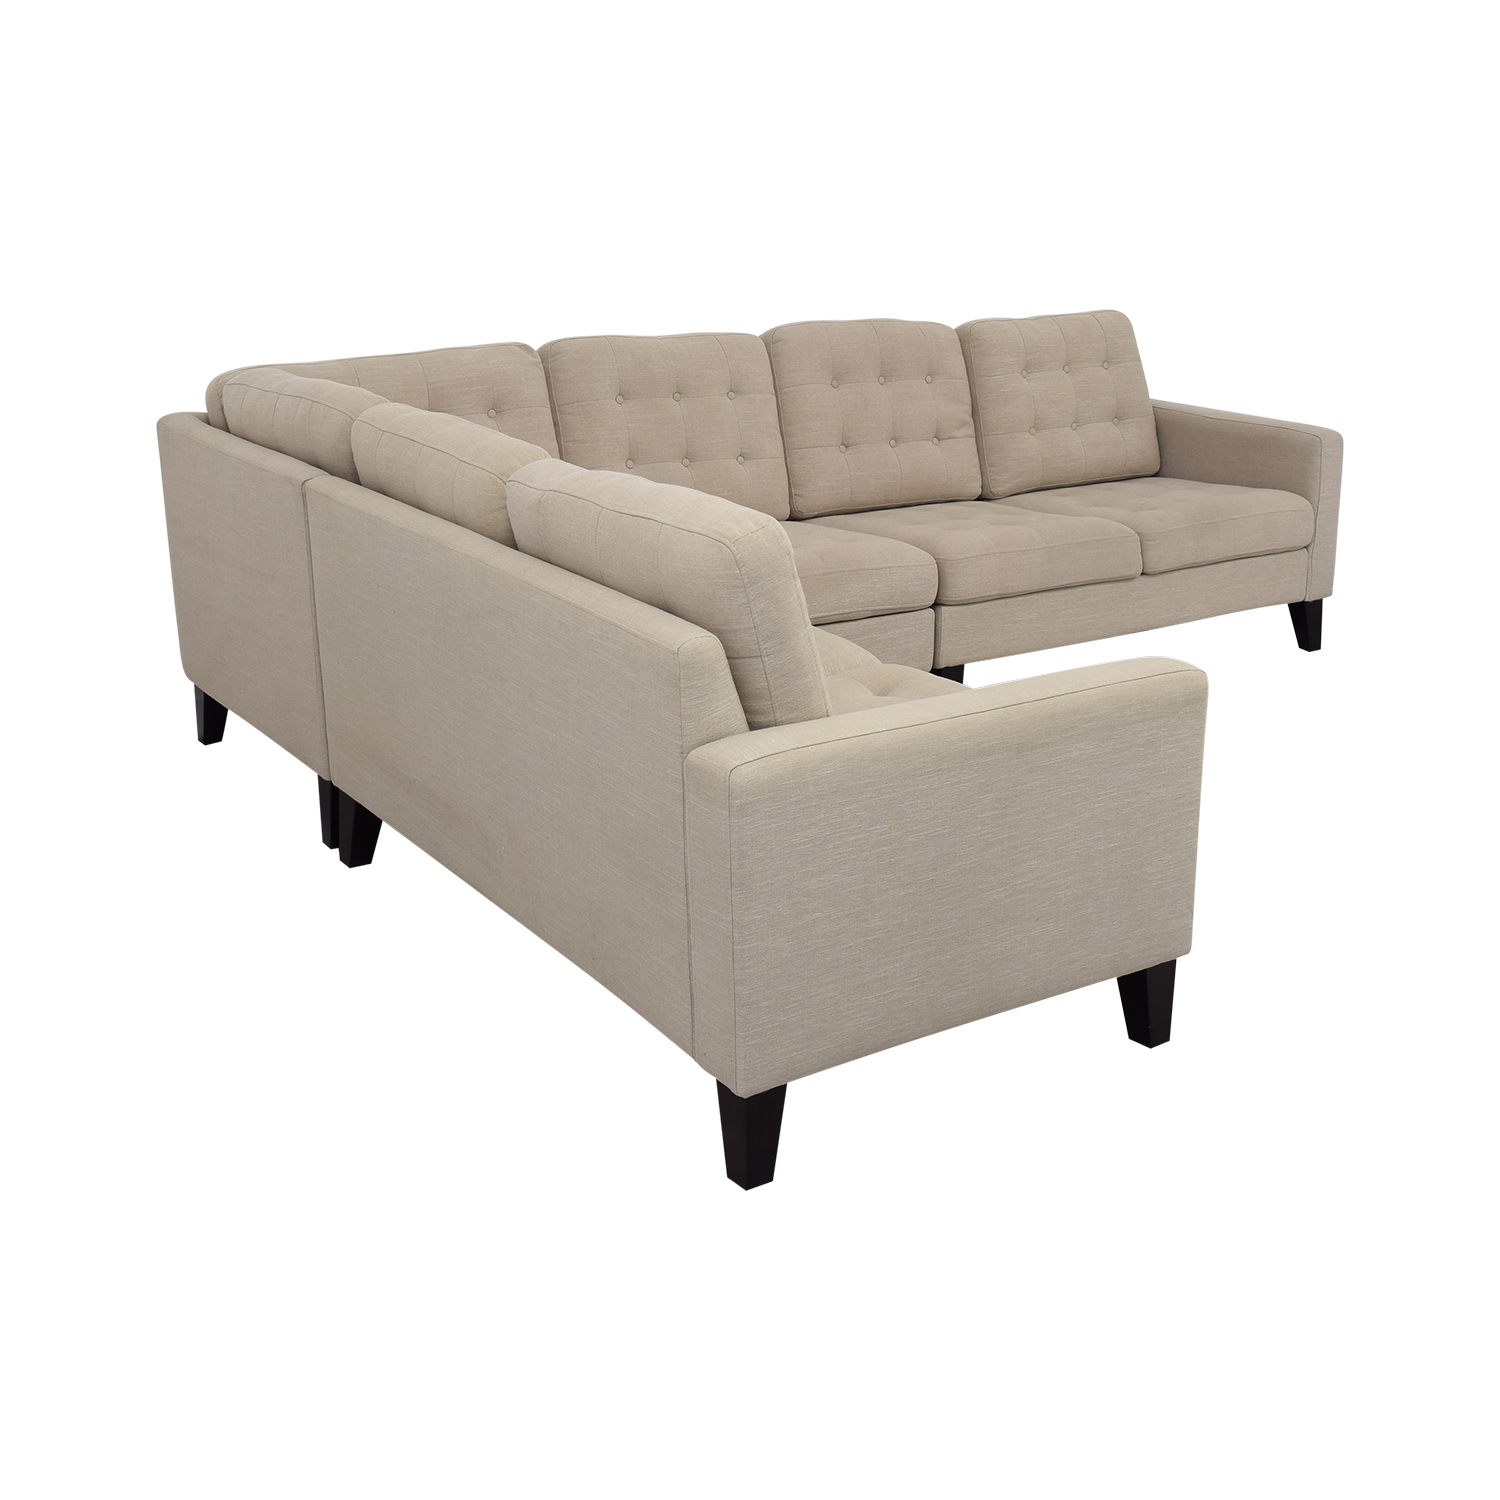 buy Pier 1 Nyle L-Shaped Sectional Sofa Pier 1